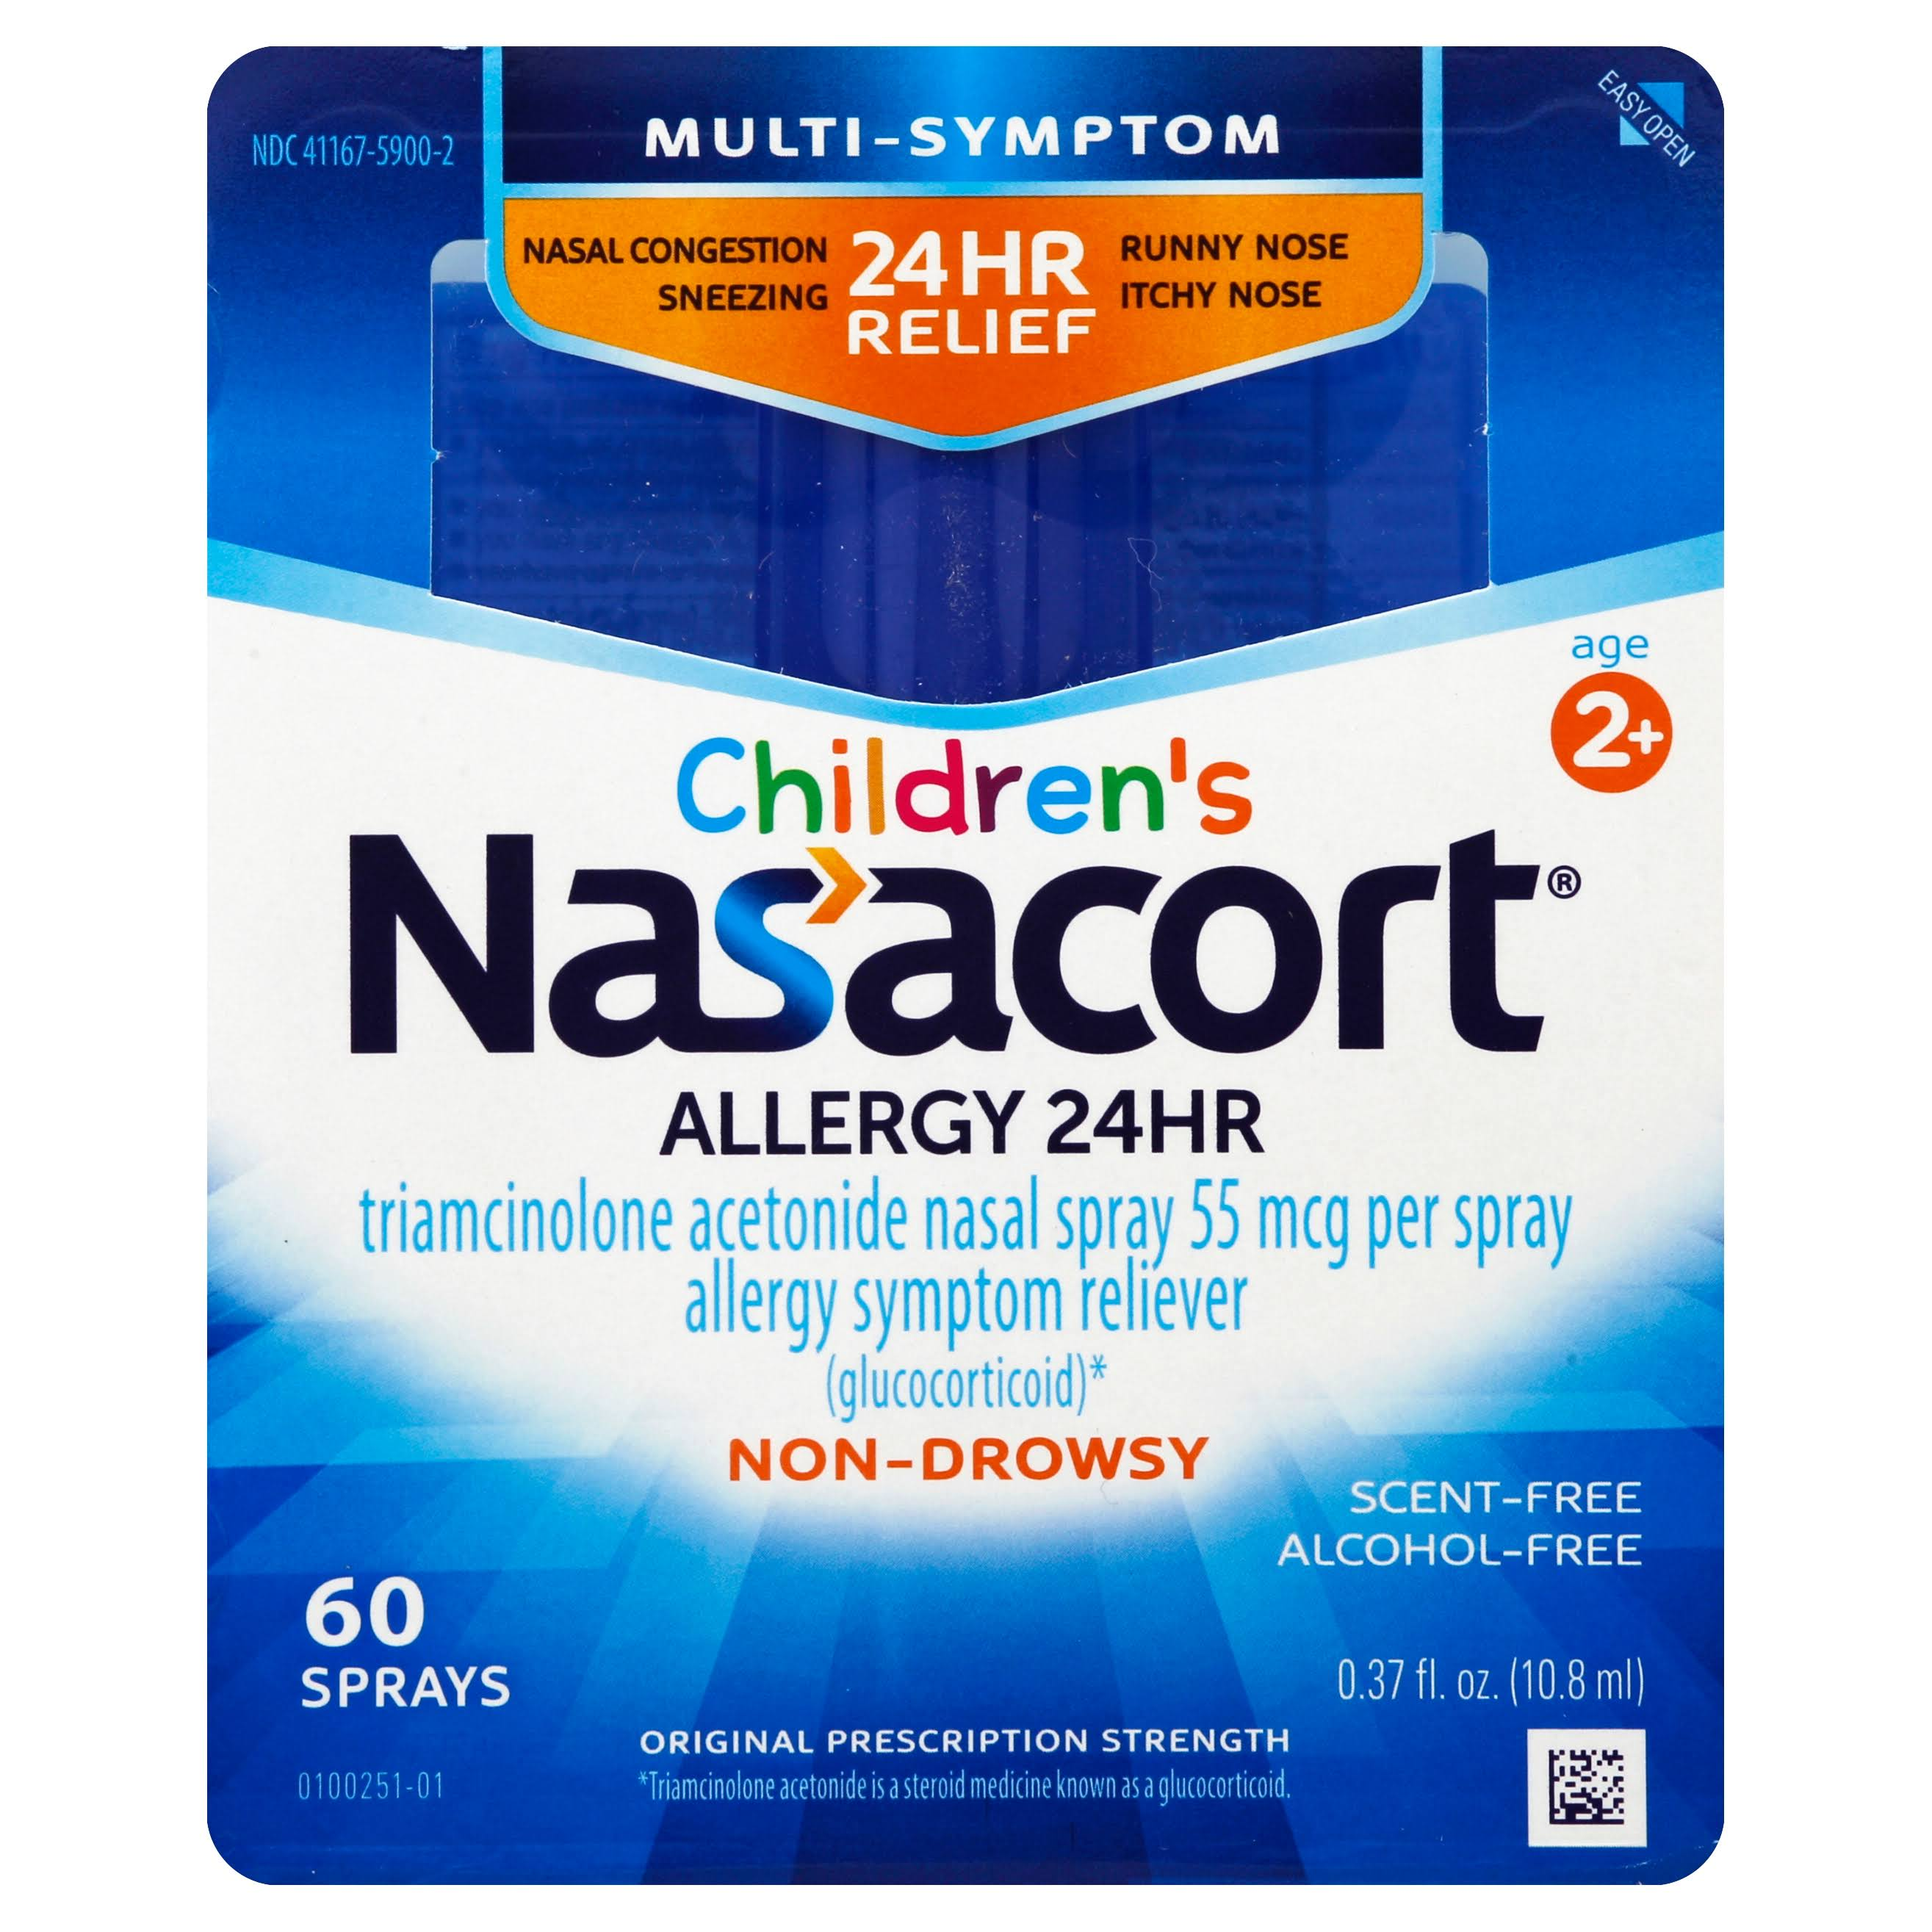 Children's Nasacort 24 HR Allergy Nasal Spray - 60 Sprays, 0.37 oz